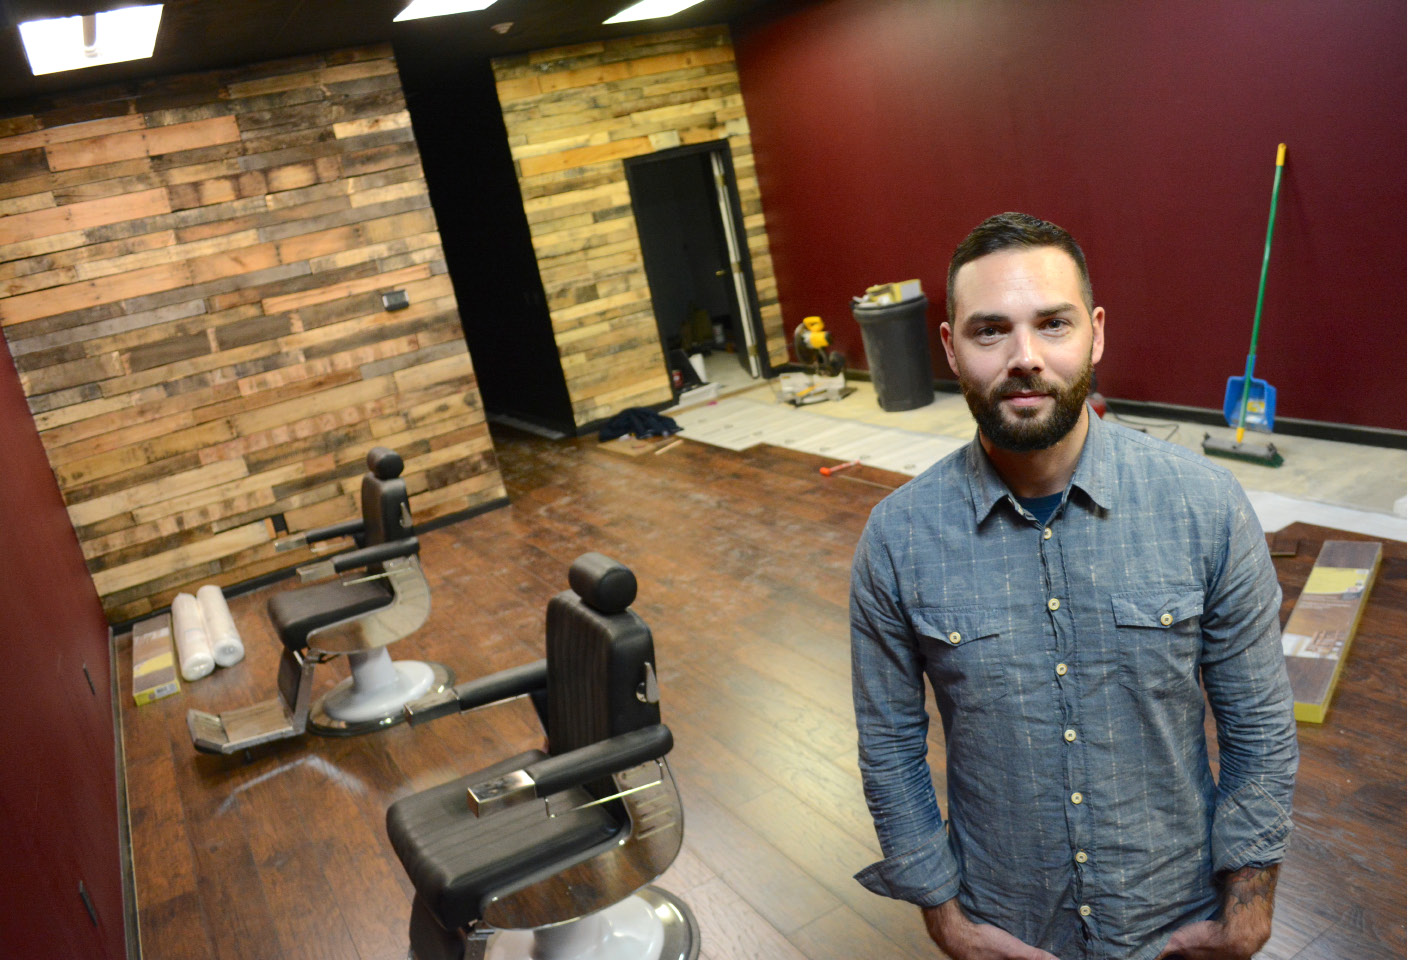 Barbershop Ten Forty Nine owner Tyler Addis at his shop on Tuesday. The shop is under construction and is scheduled to open in January.| Bryan Lipiner, Record-Journal